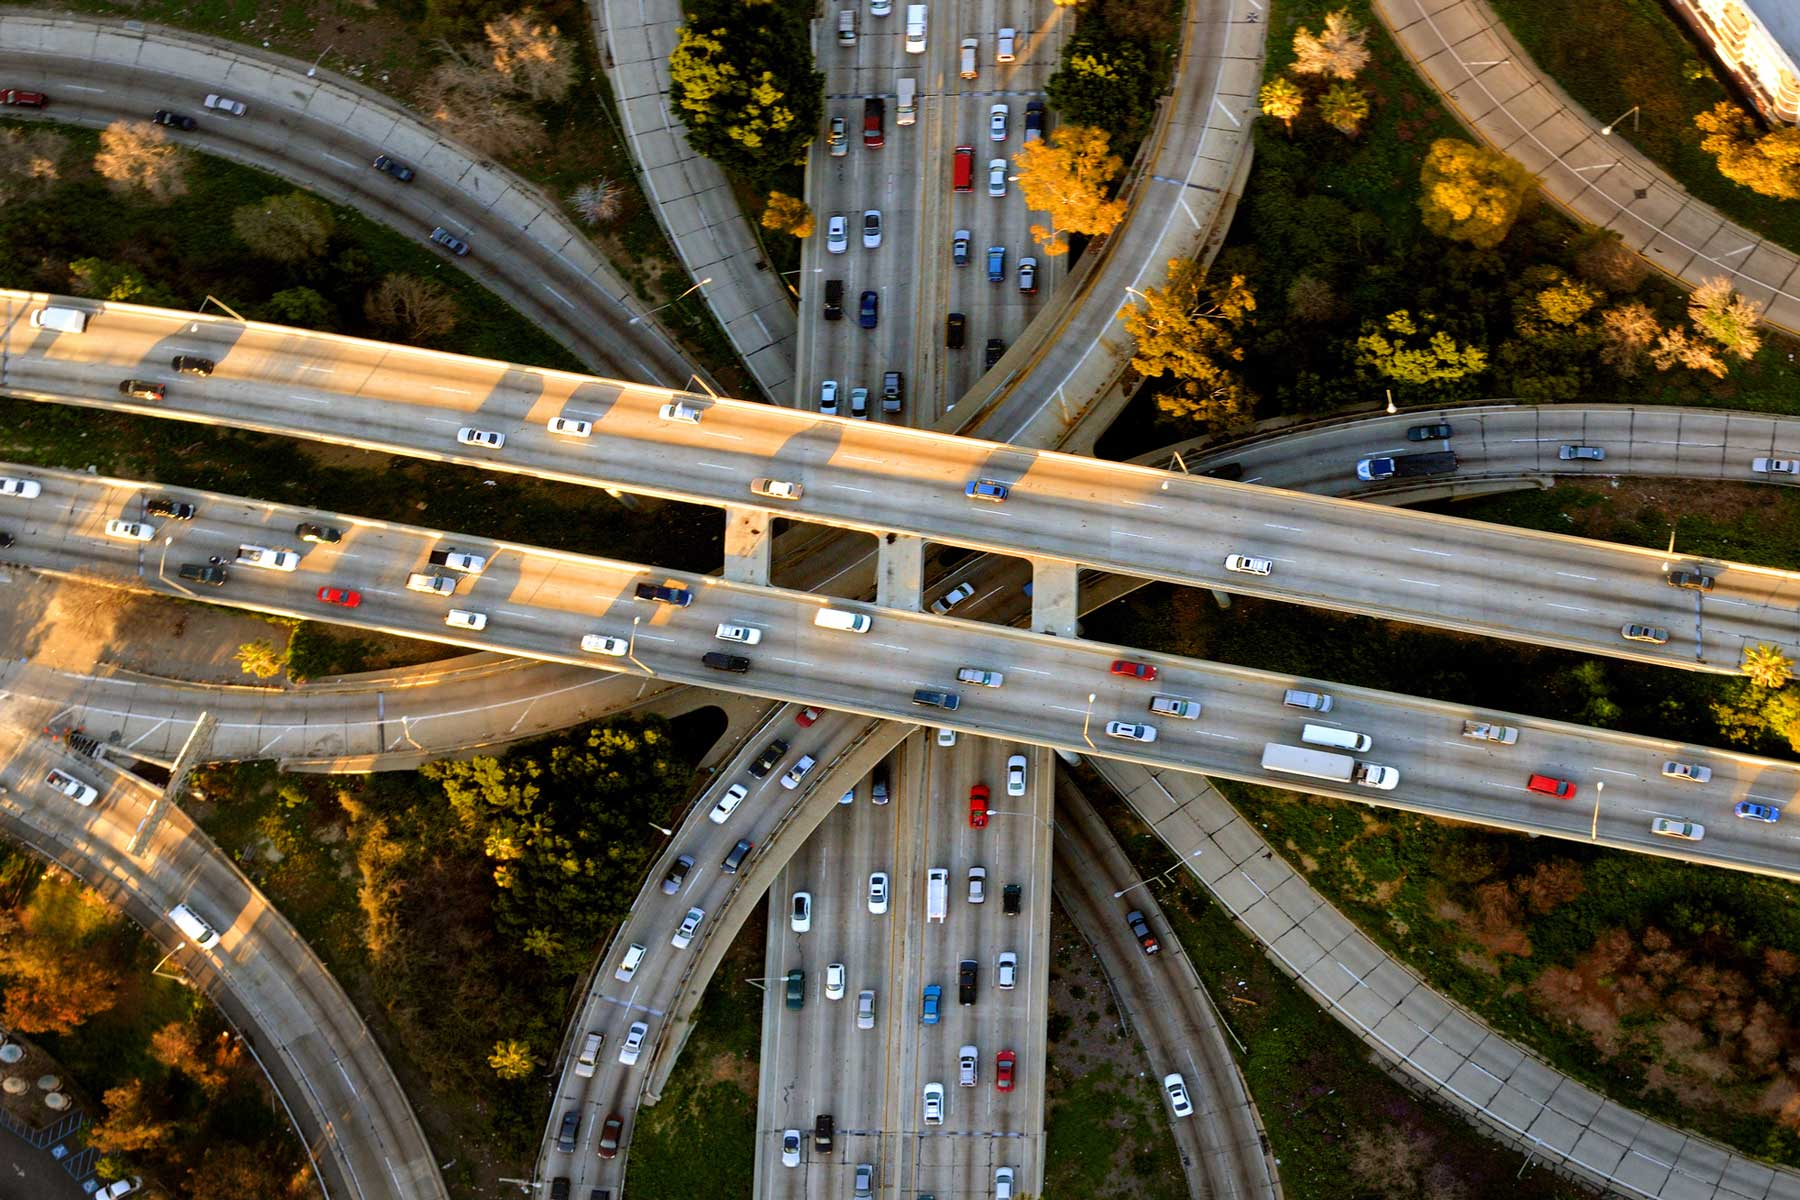 Helicopter Aerial View of the famous Los Angeles Four Level freeway interchange